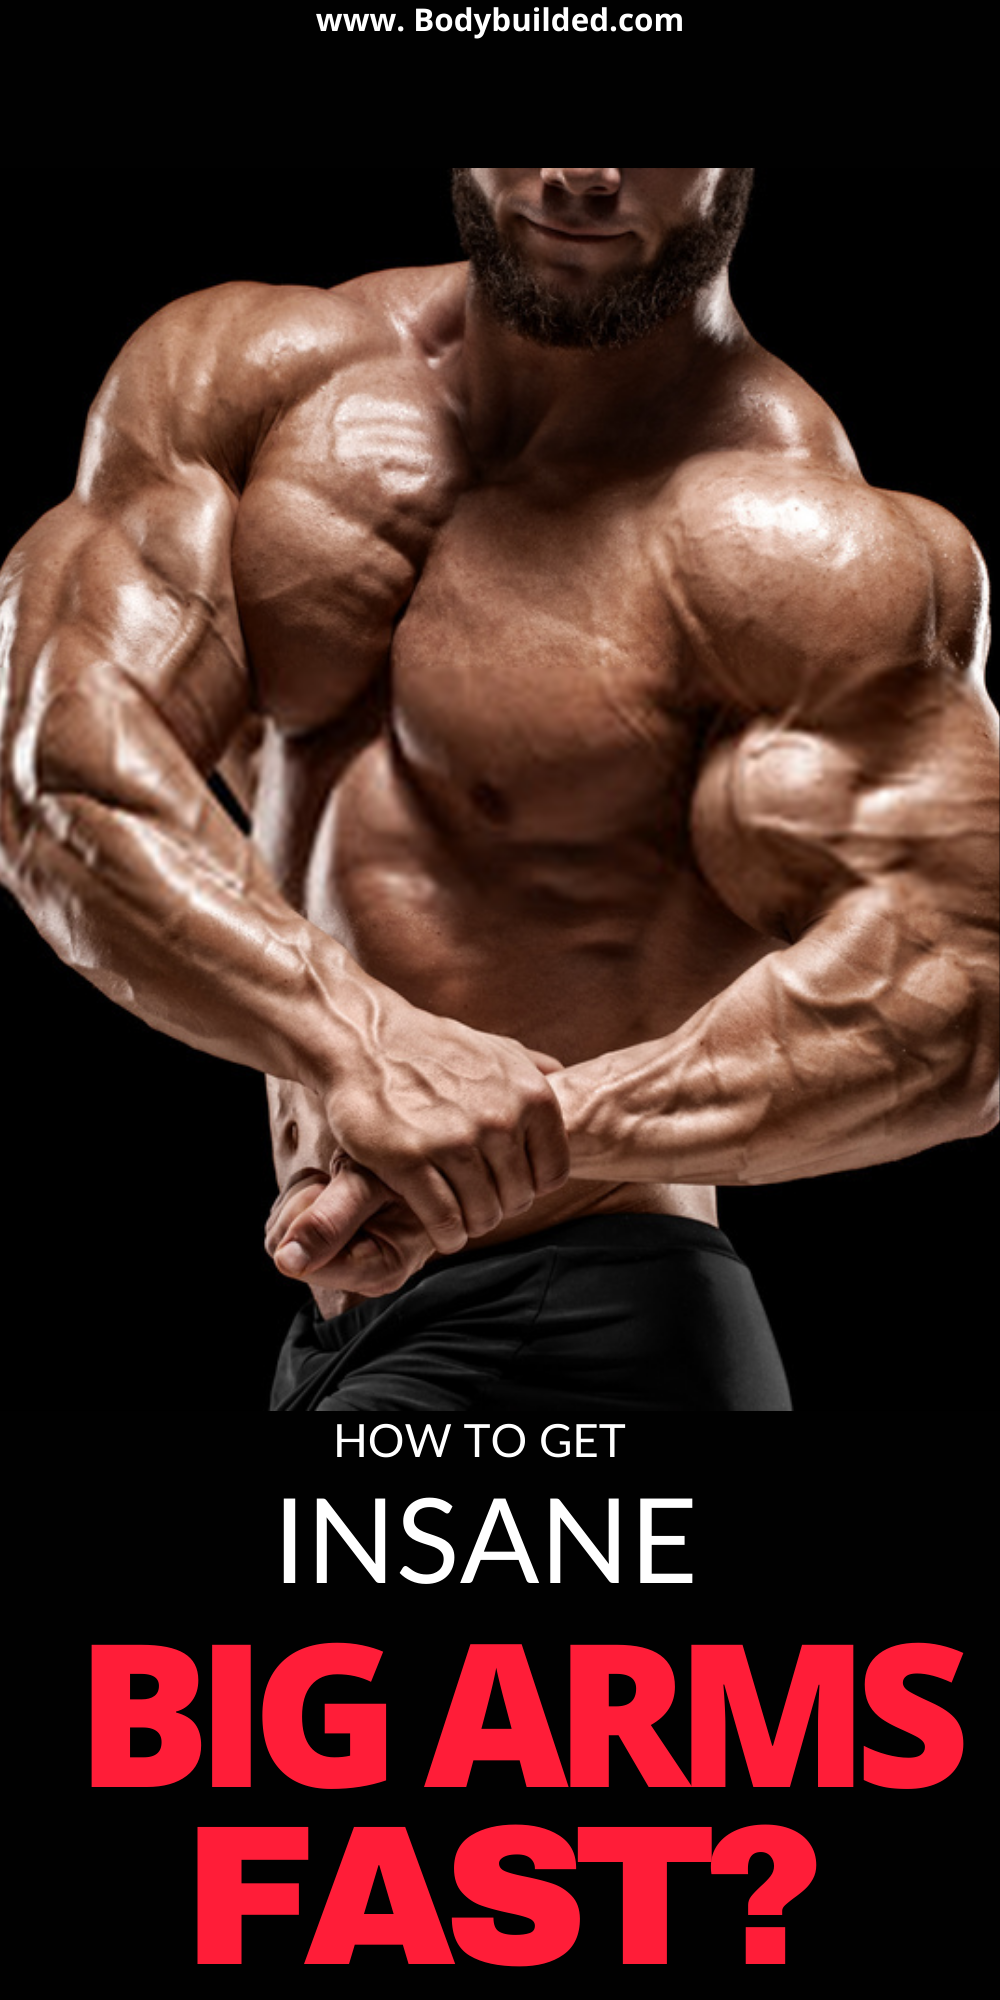 33 Proven Workouts And Tips To Get Bigger Arms Fast In 2 4 Weeks Bigger Arms Big Biceps Workout Get Bigger Arms